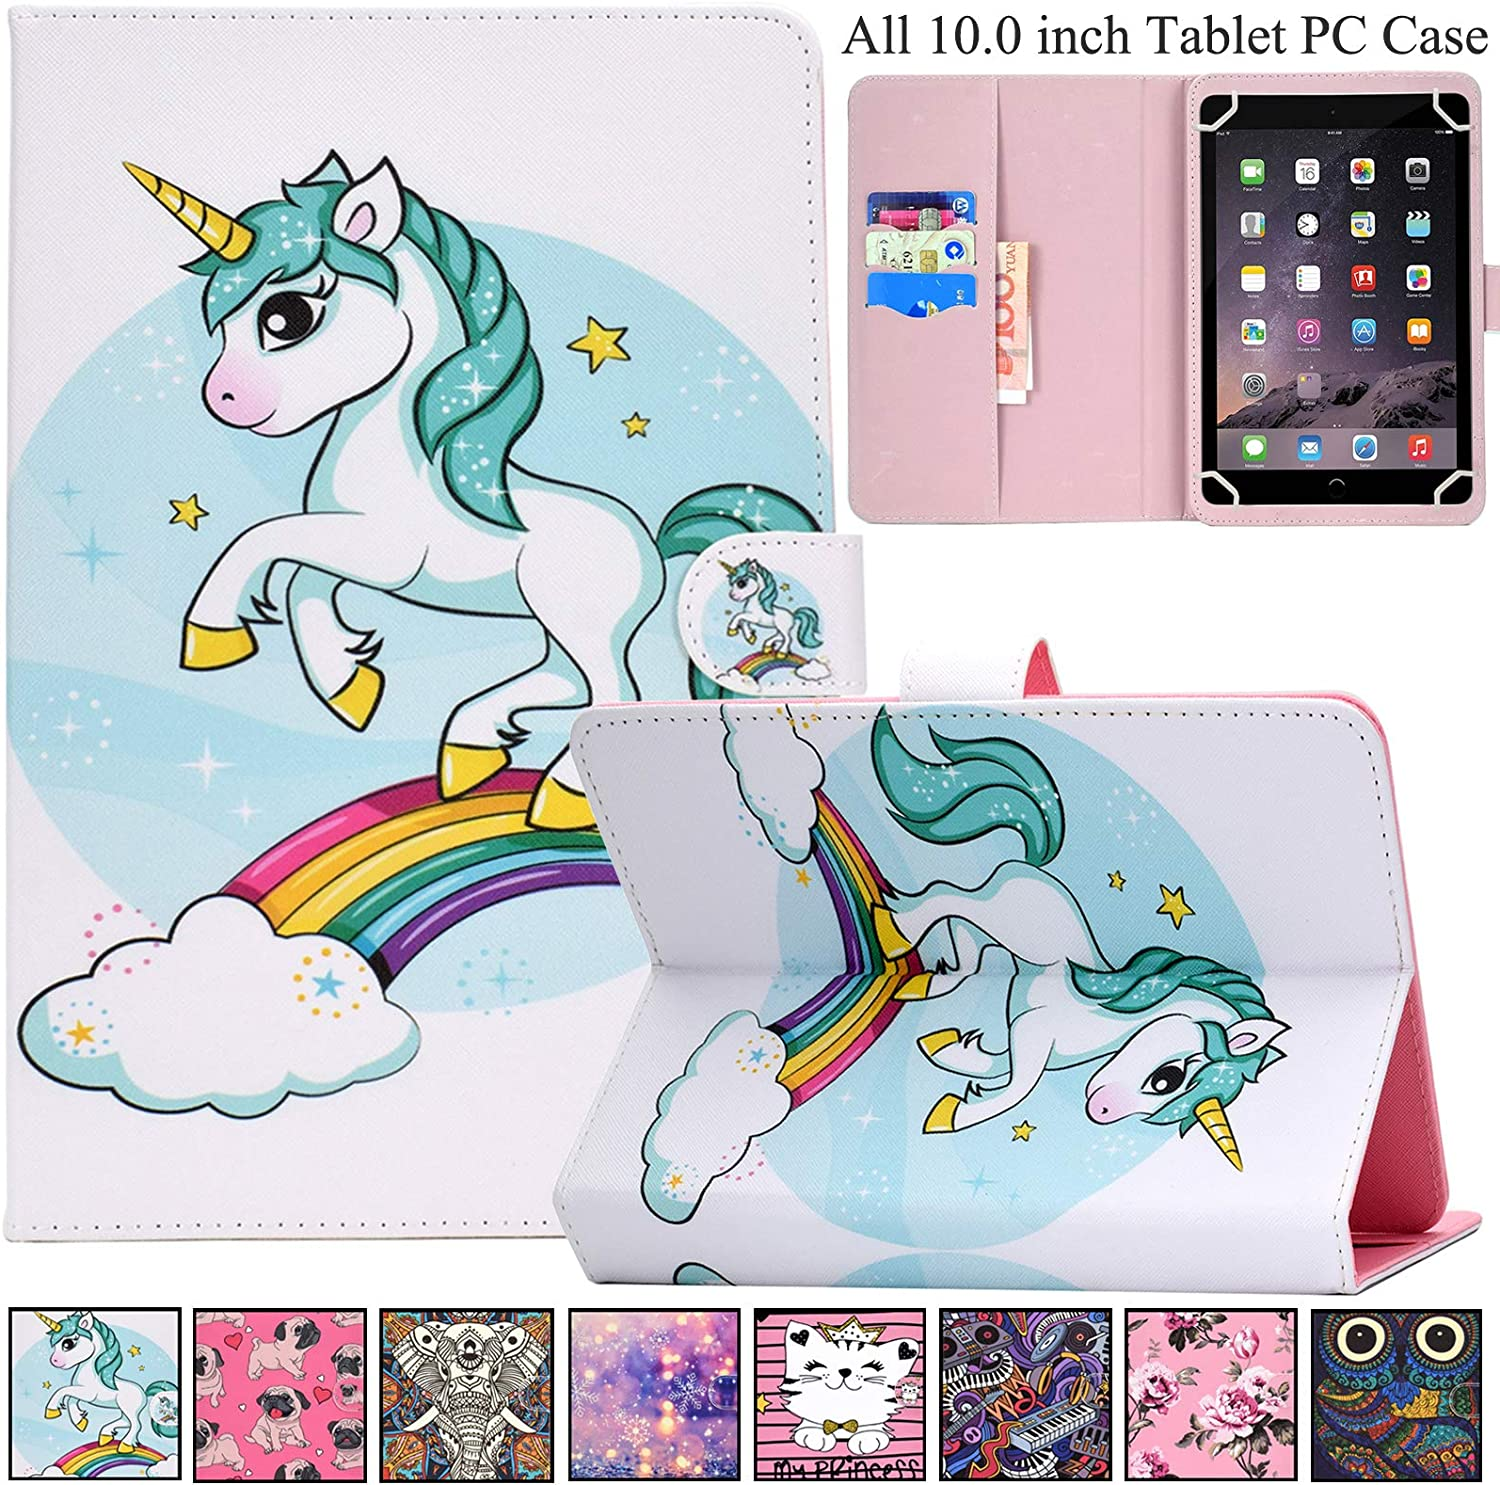 Universal Case for 9.0-10.5 inch Tablet,REASUN Slim Folio PU Leather Card Slot Wallet Shell for Apple/Samsung/Kindle/Huawei/Lenovo/Android/Dragon Touch 9.7 9.6 10.1 10.5 Inch Tablet (White Unicorn)